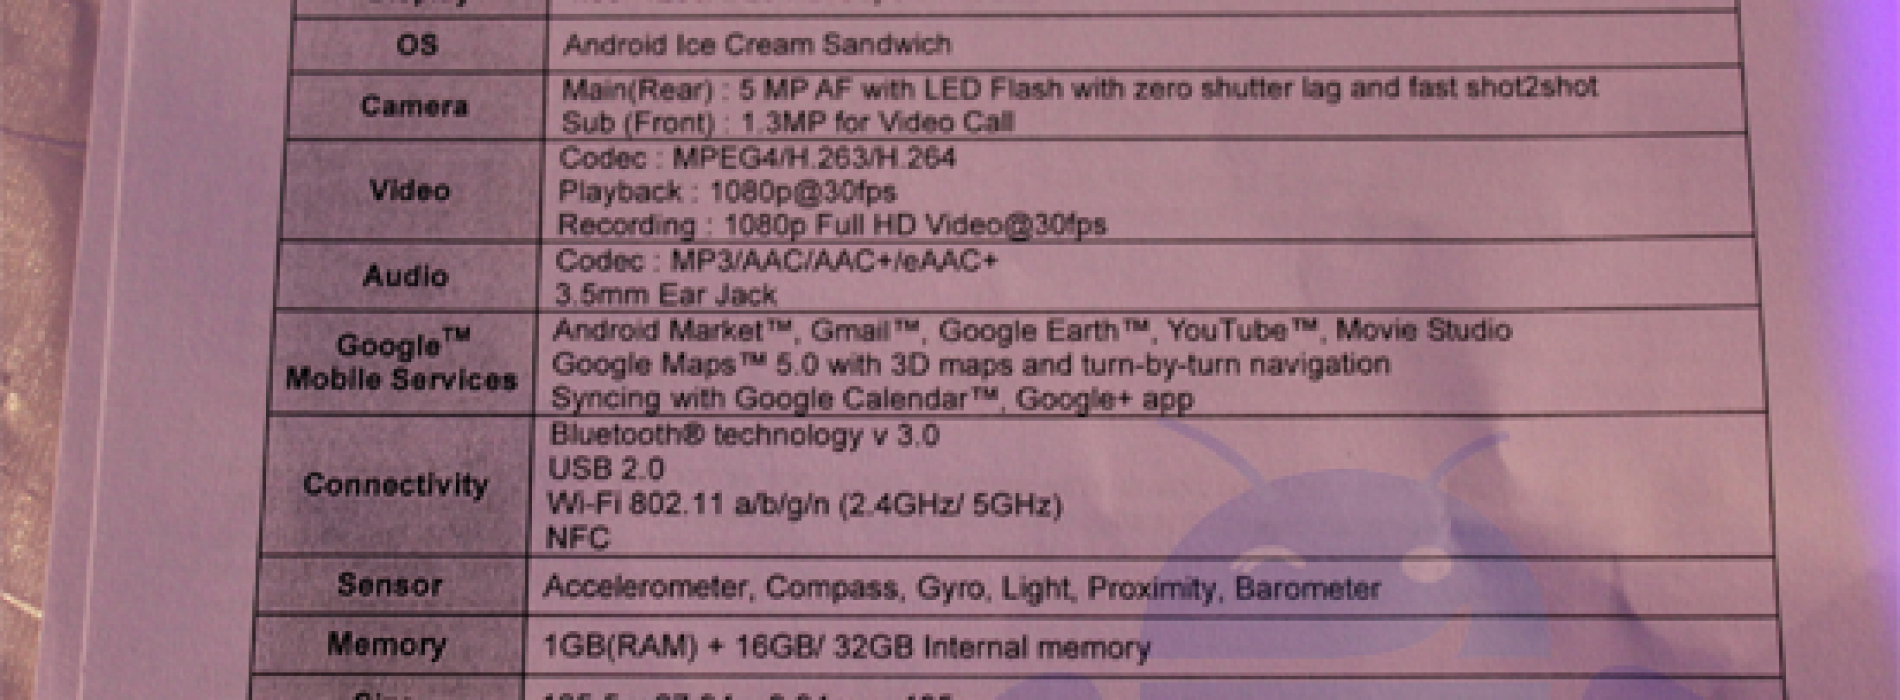 Galaxy Nexus Specs Revealed; It's Official This Time